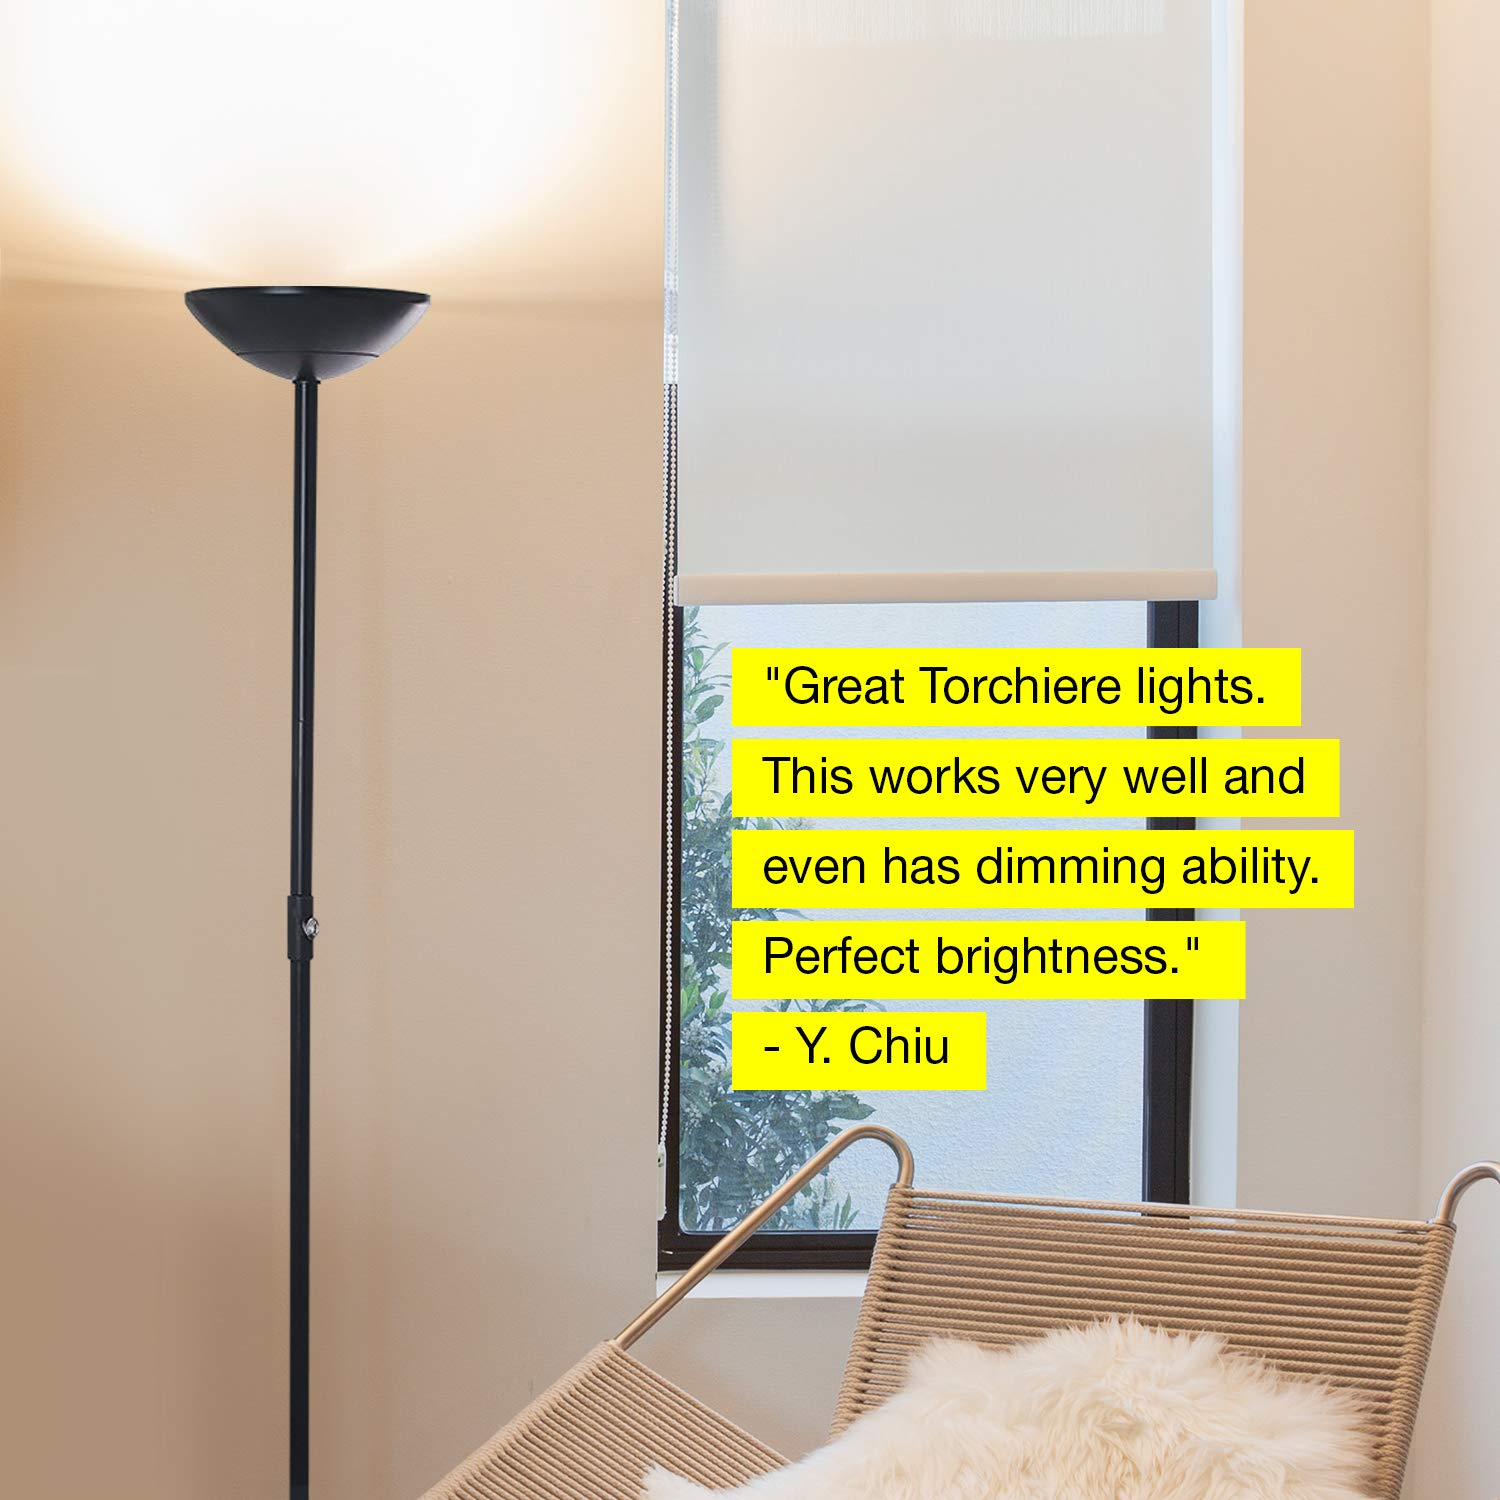 Brightech SkyLite - Bright LED Torchiere Floor Lamp for Offices - Modern, Dimmable Reading Light for Living Rooms & Bedrooms - Tall Standing Pole Light - Jet Black by Brightech (Image #10)